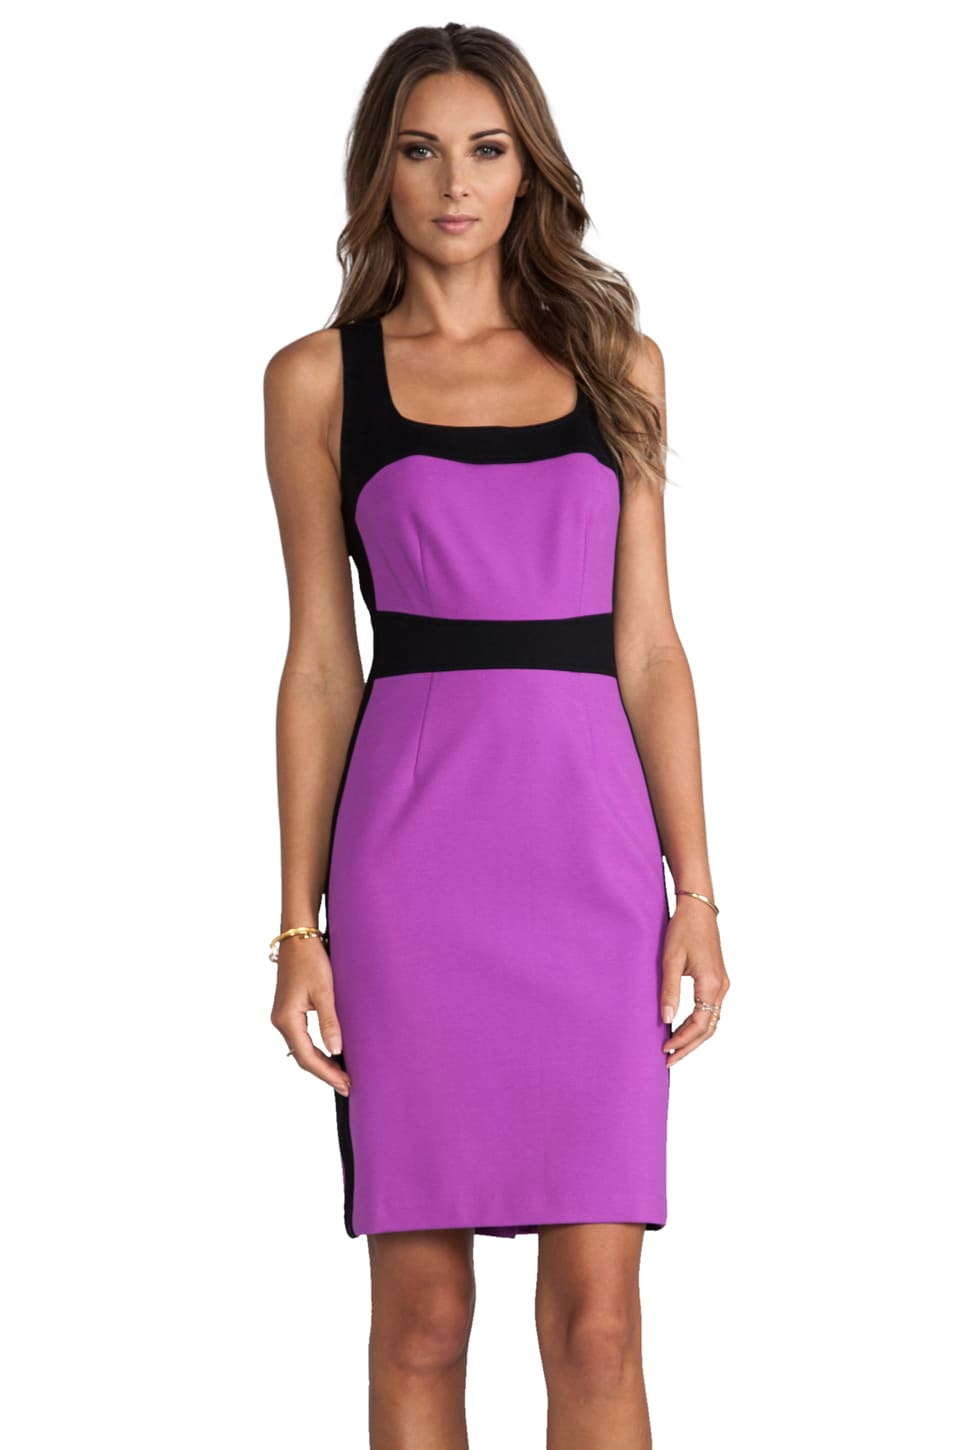 Nanette Lepore Hot Pursuit Dress in Grape